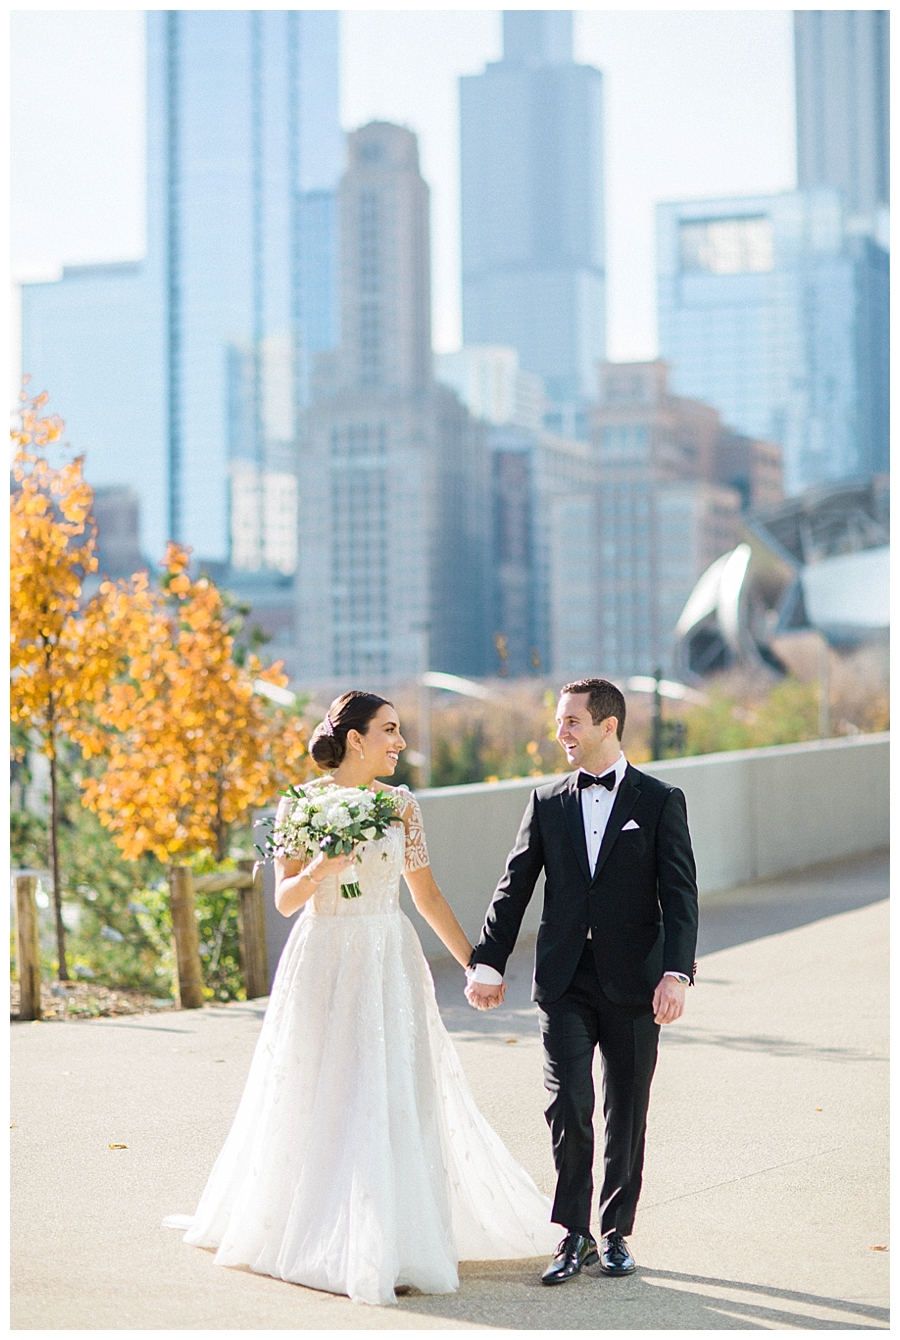 fine art photography of bride and groom at Maggie Daley Park, Chicago